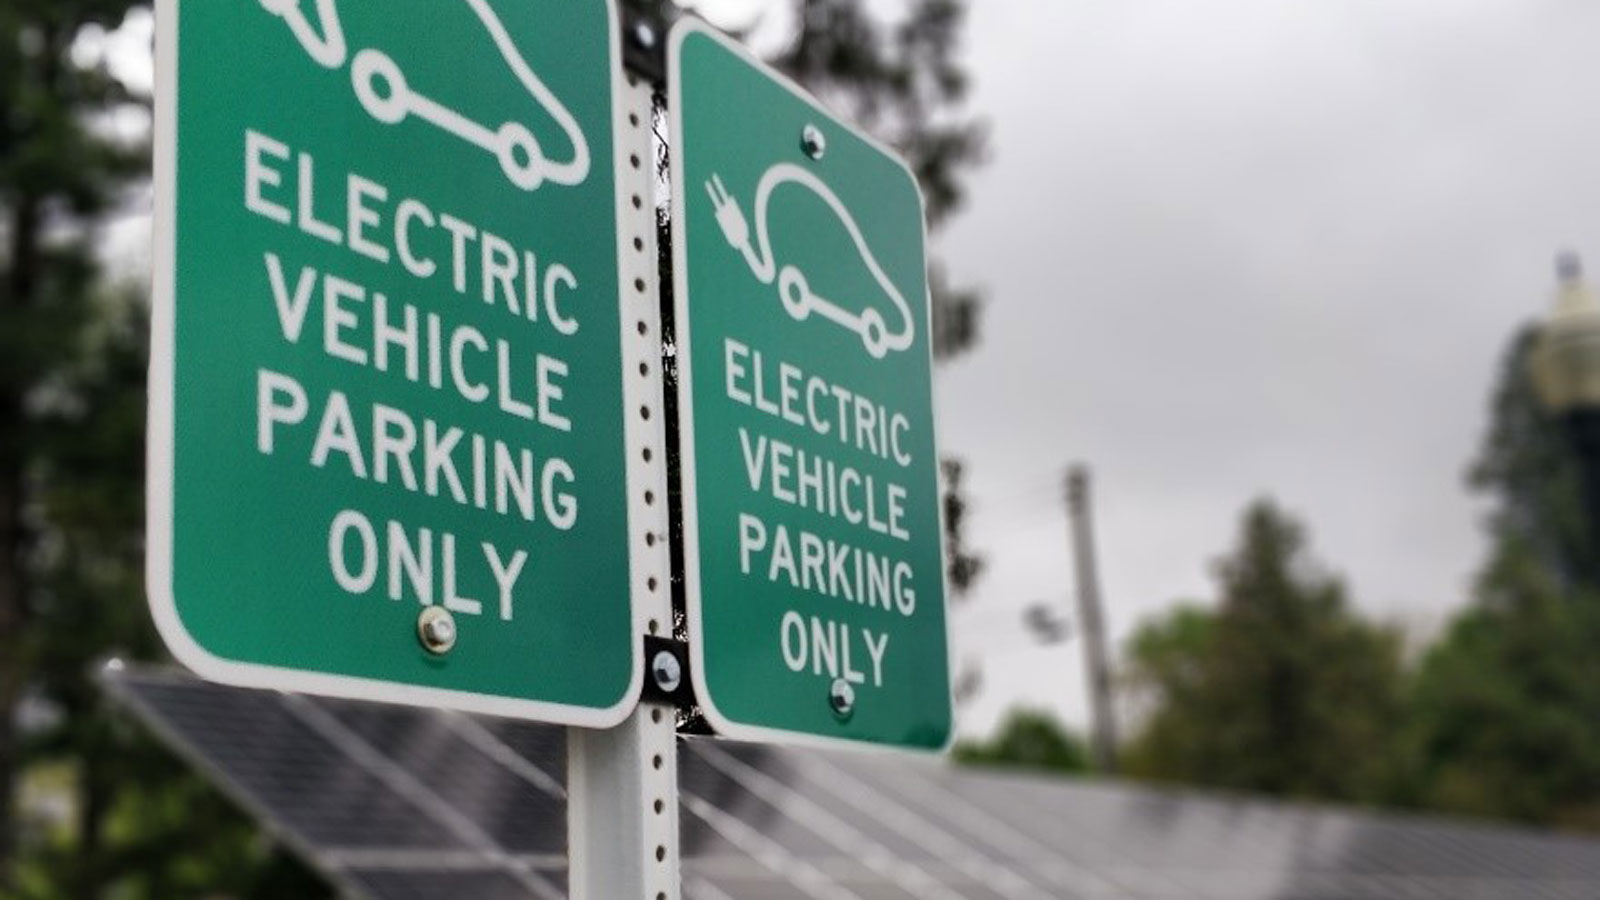 "<h3>ELECTRIC VEHICLES</h3><h5>There were <span class=""slideshowHighlight"">over 361,000 electric vehicles</span> sold in the U.S. in 2018, compared to virtually none in 2009. In the first seven months of 2019, electric vehicle sales were up an additional 14 percent over that same period in 2018.</h5>"